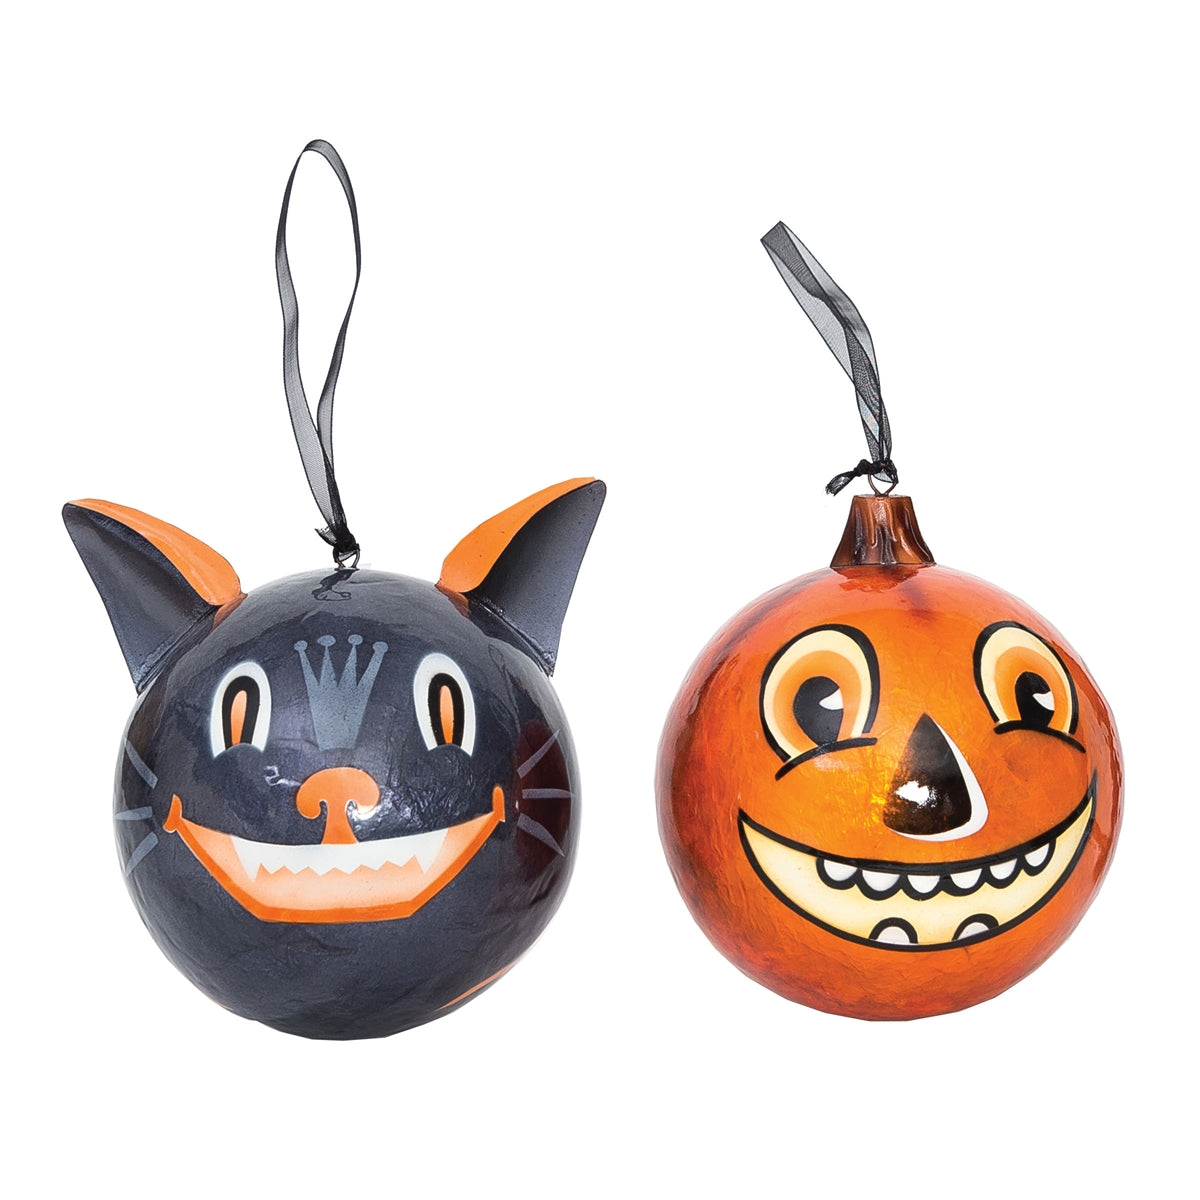 Vintage Halloween Cat & Pumpkin Ornaments